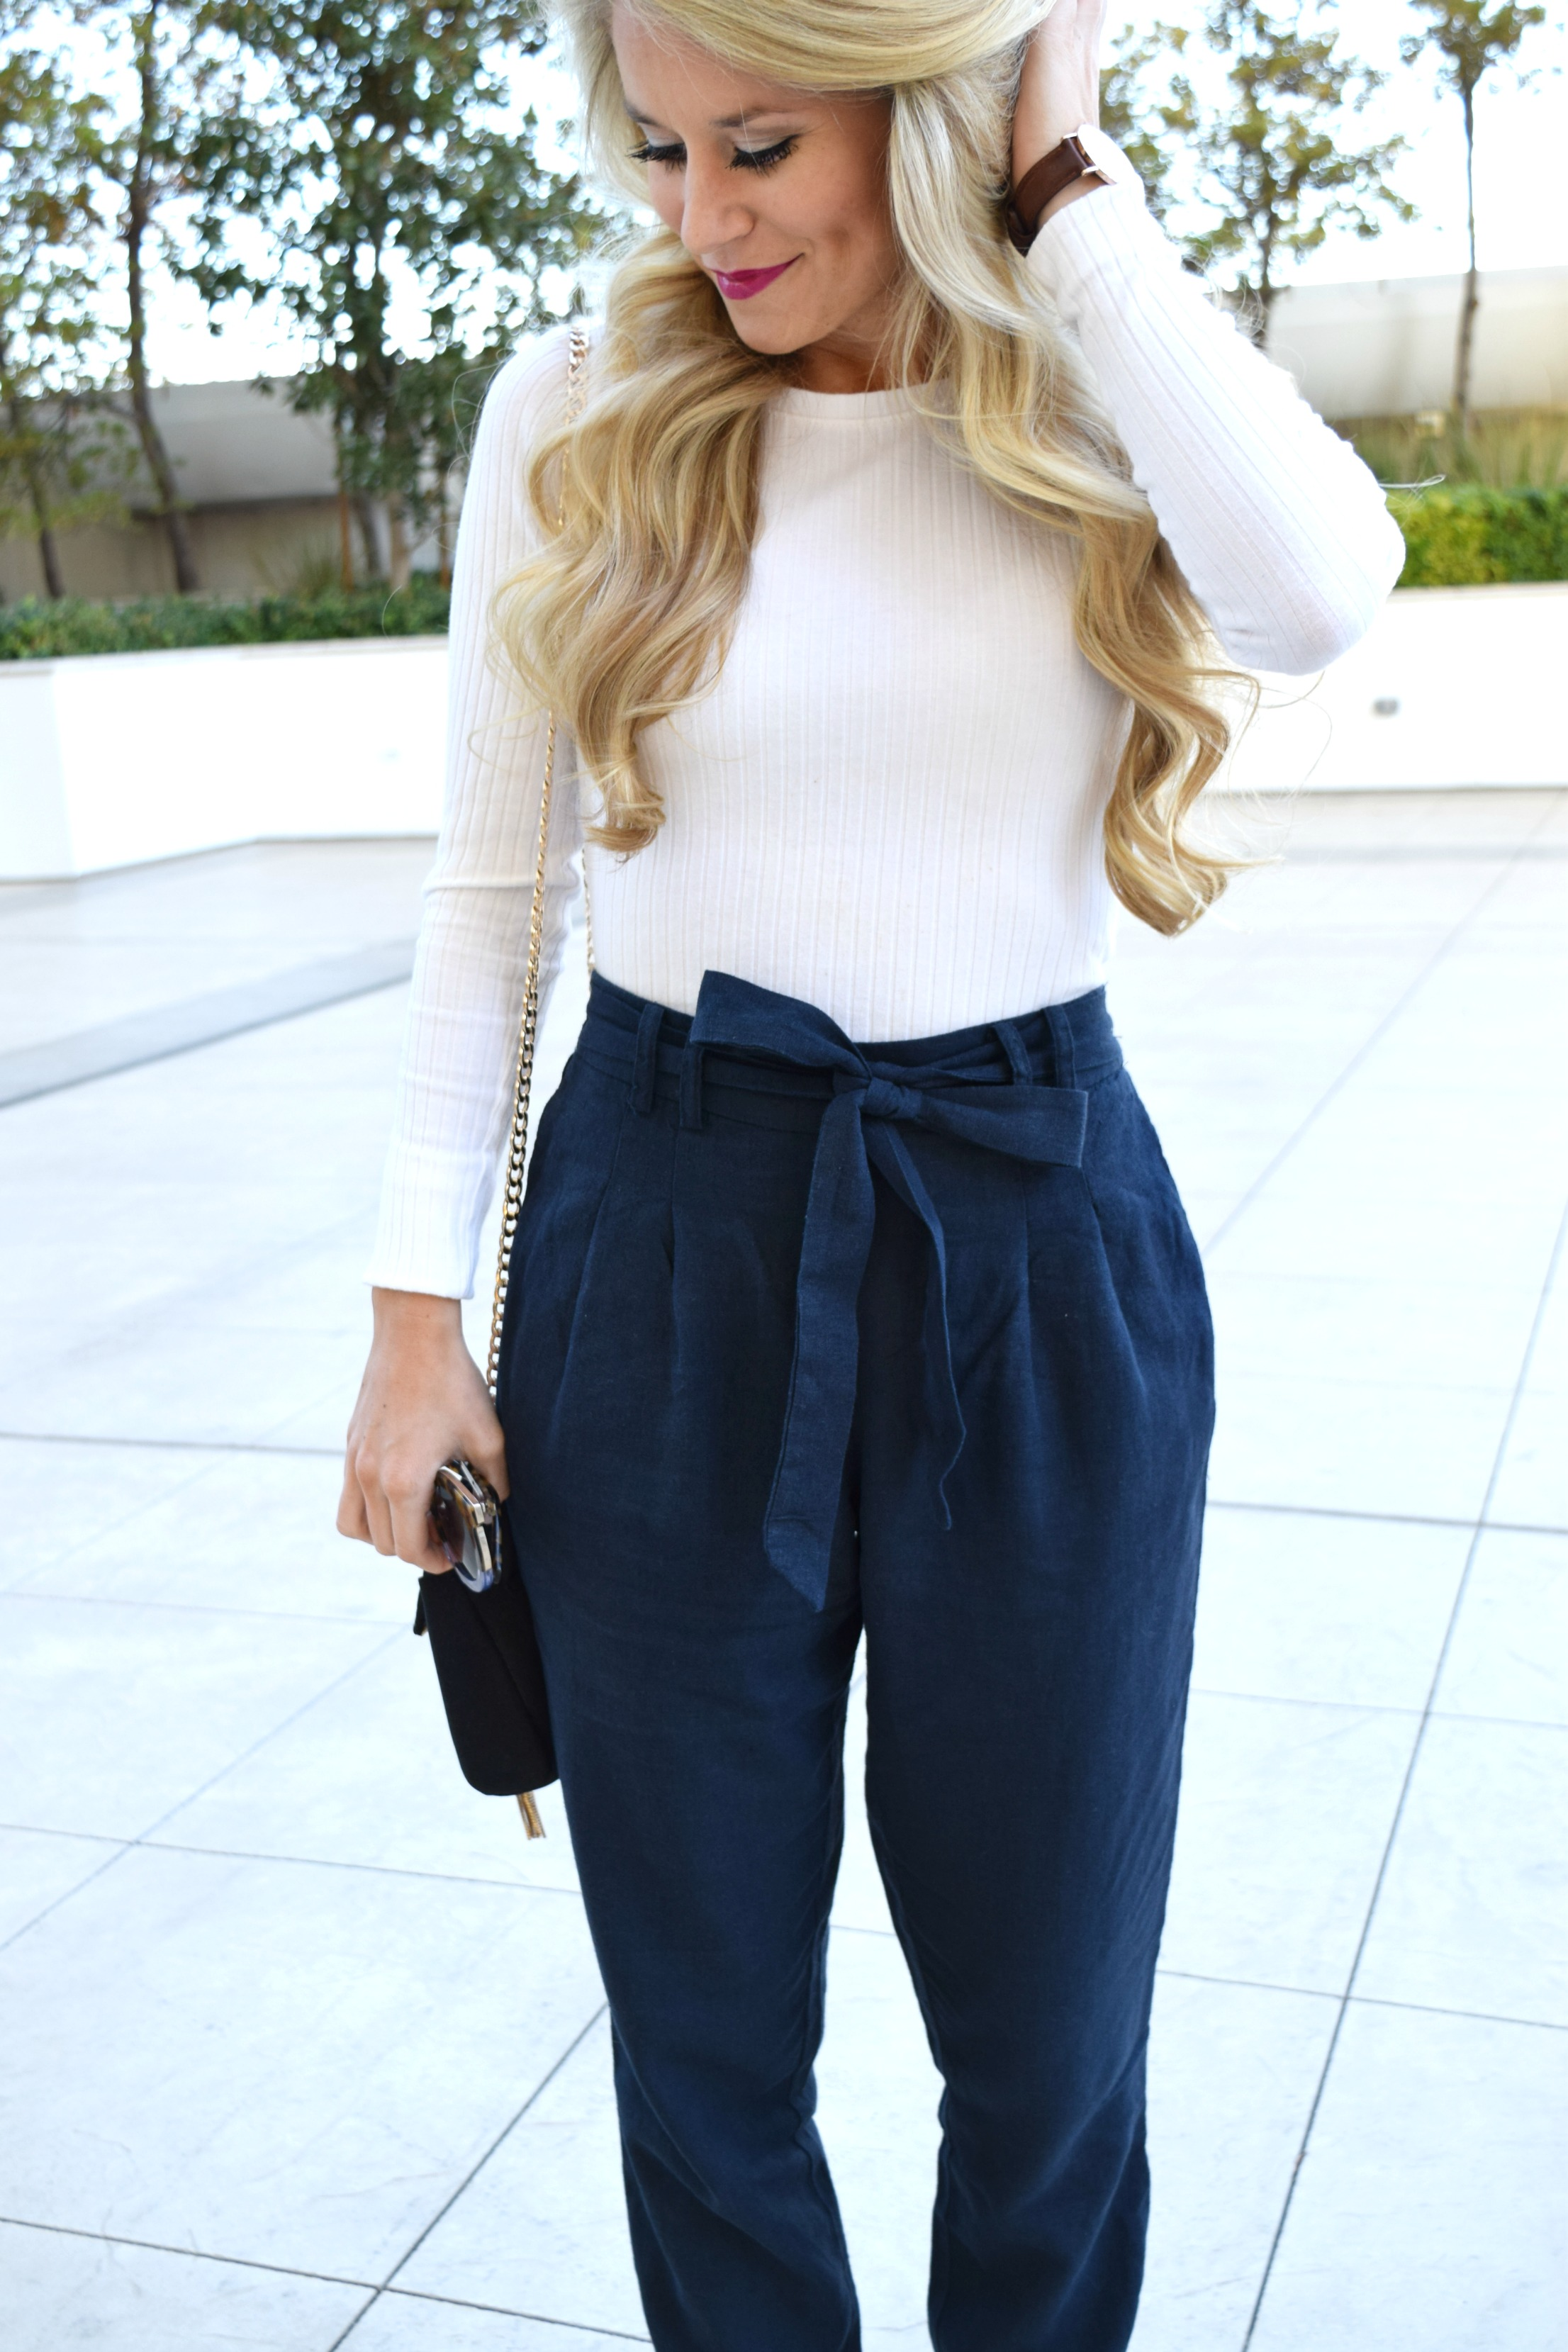 on sale online durable modeling shop for best High-Waisted Tie Pants - Welcome to Olivia Rink